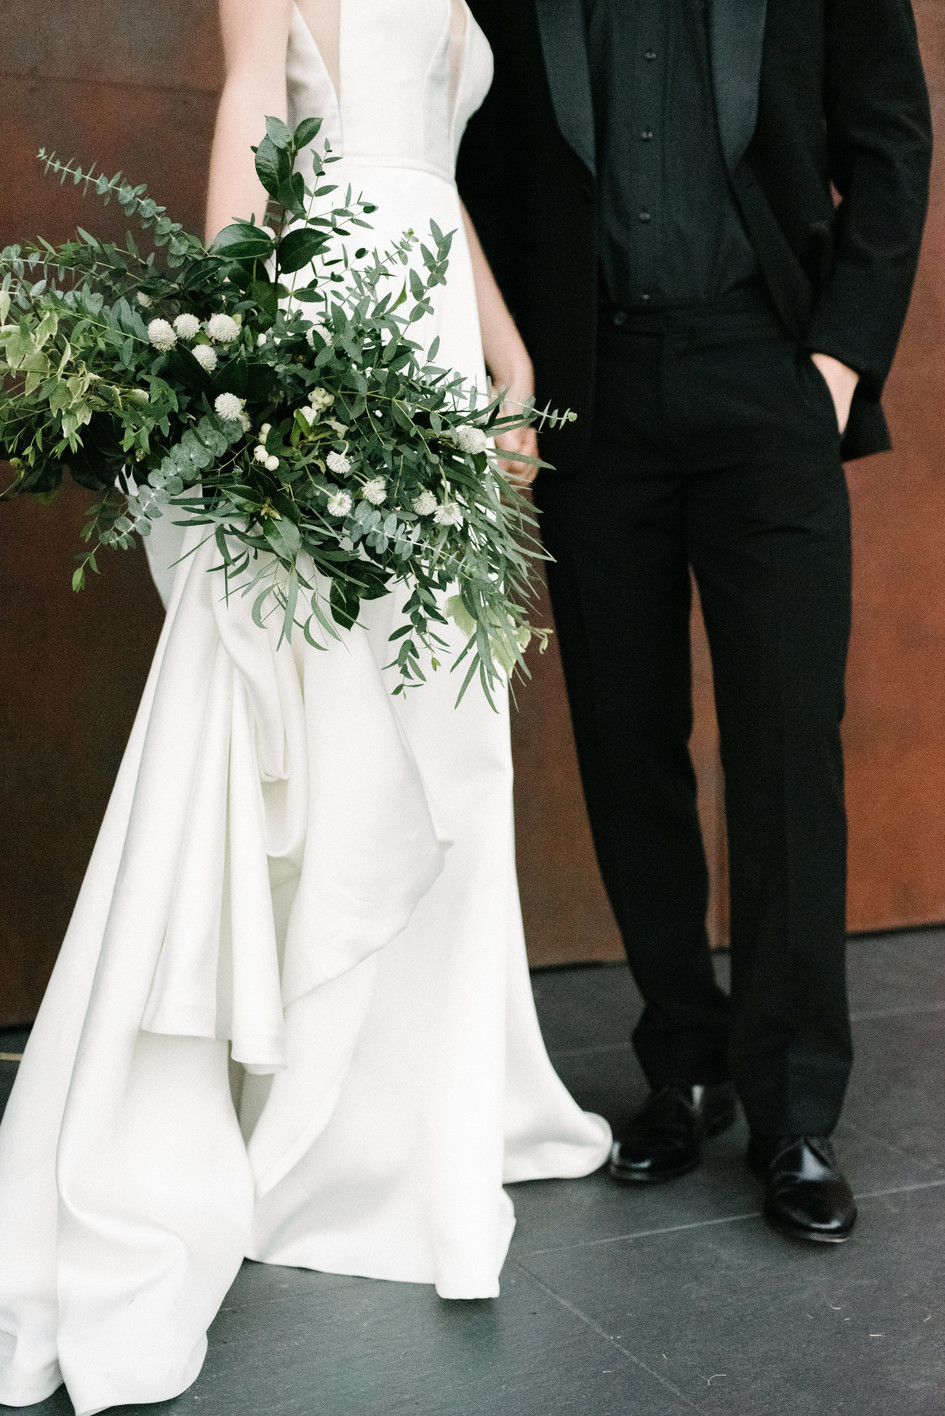 modern_wedding_dress.jpg